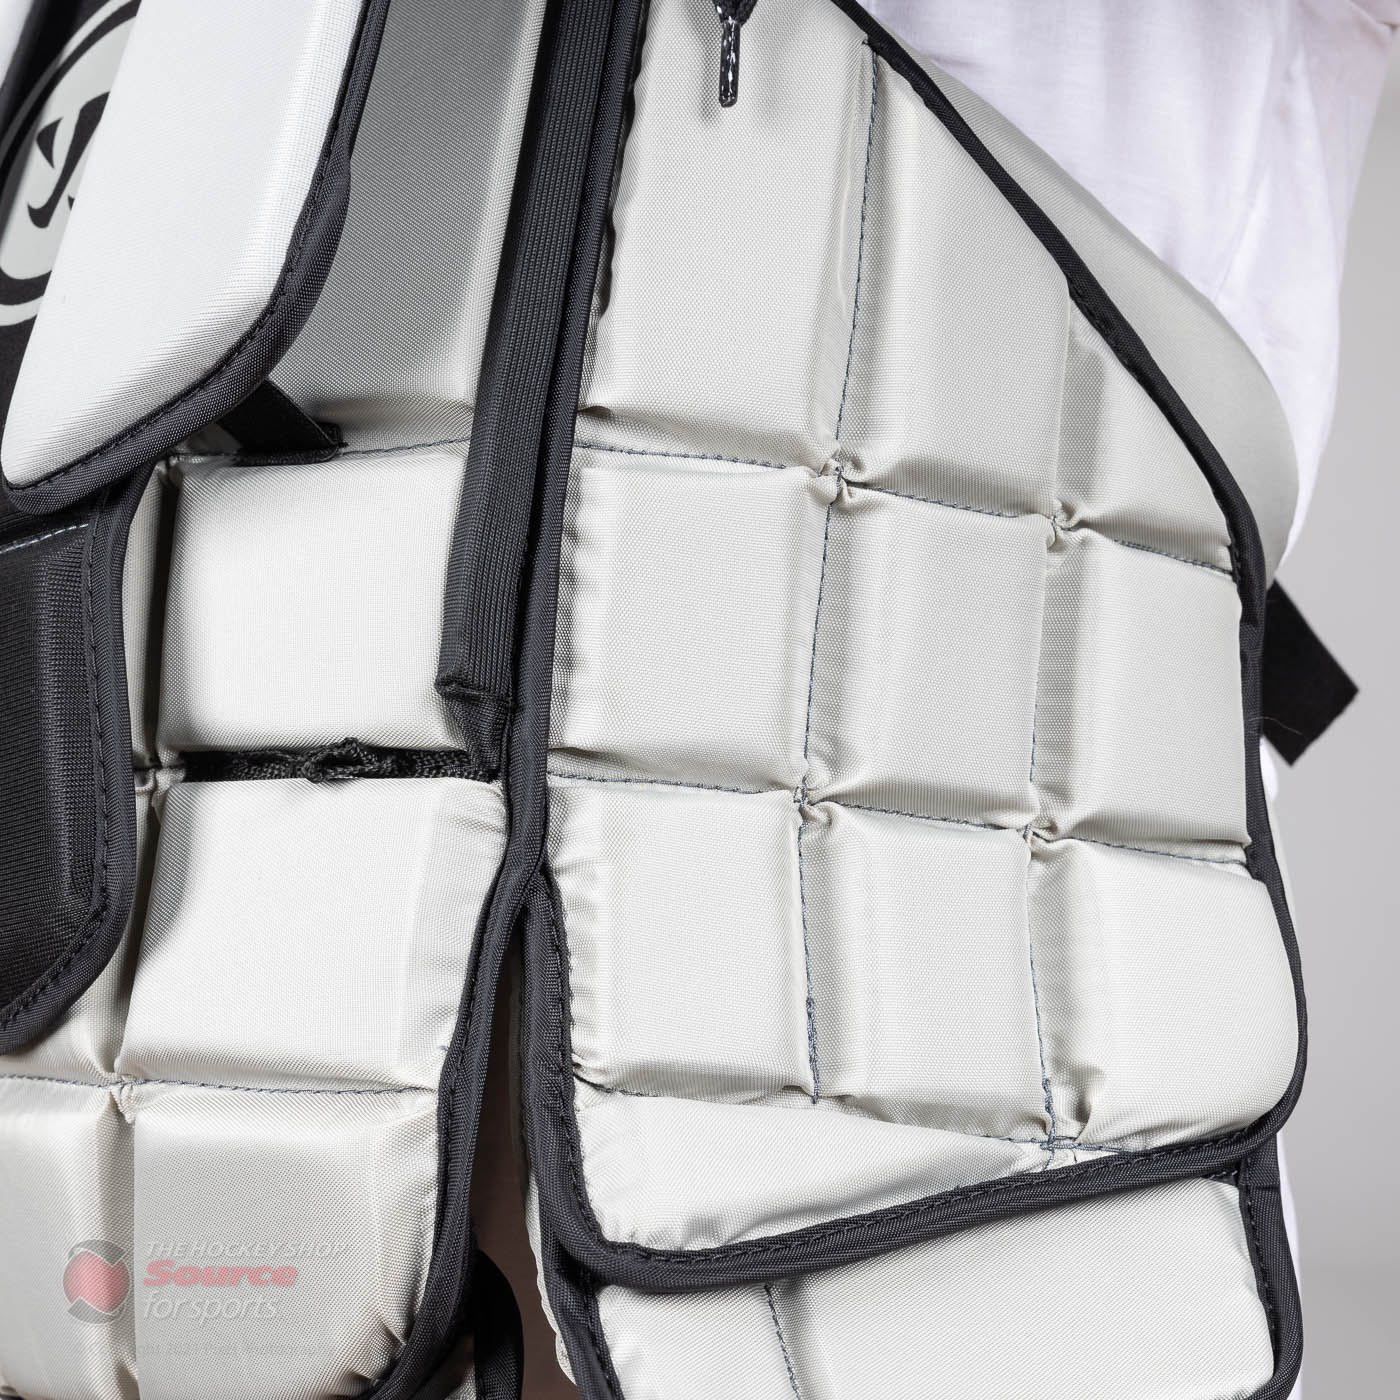 Warrior Ritual X3 Chest Protector